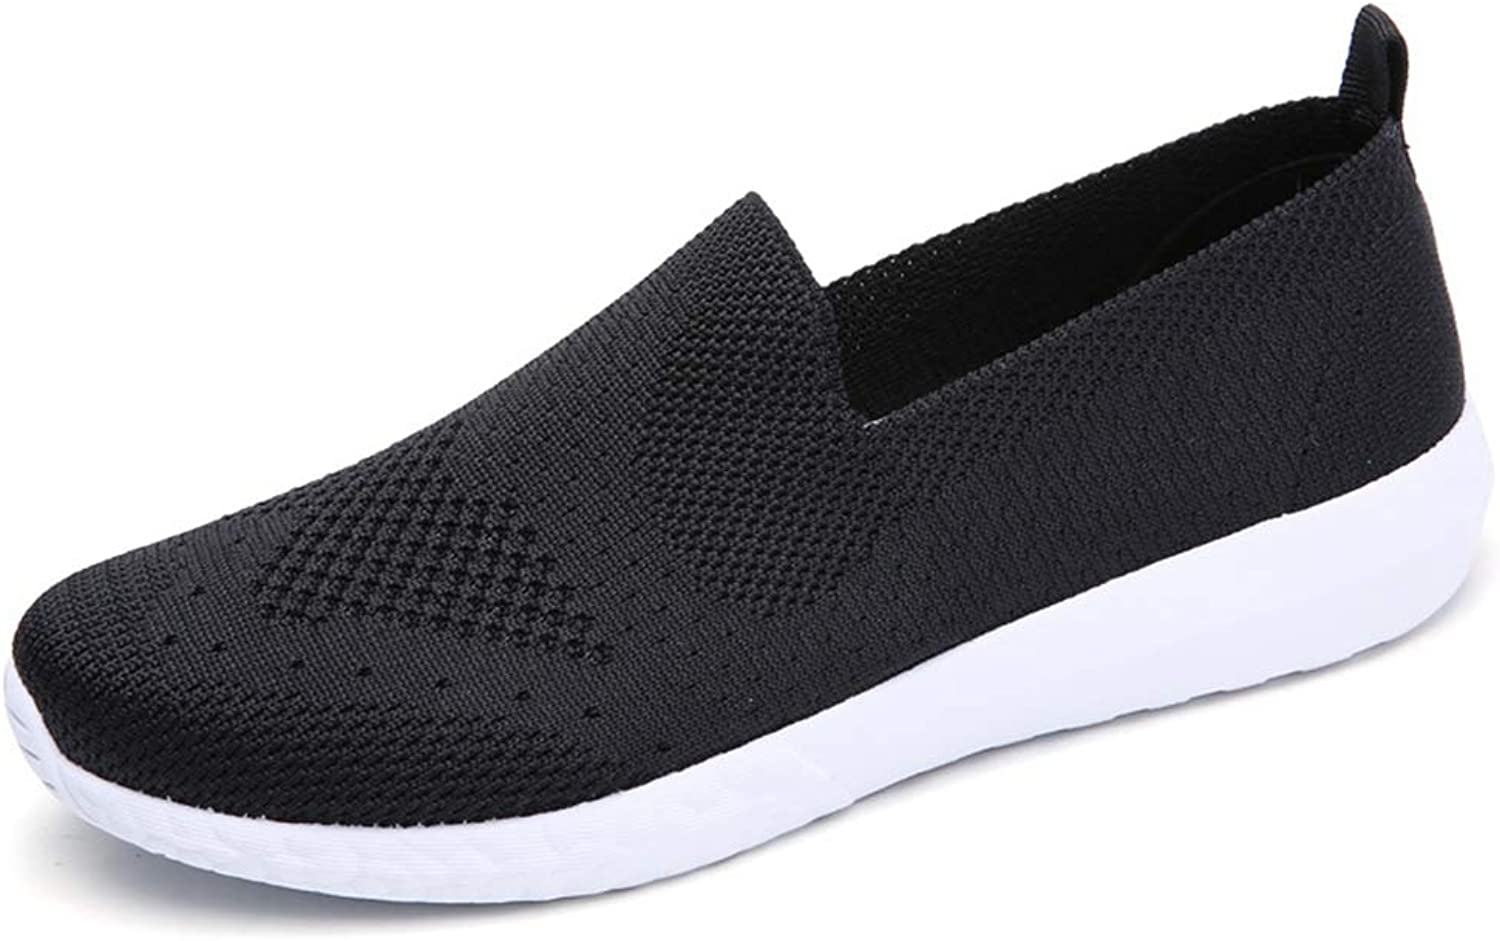 T-JULY Summer Fashion Women Flats Loafers Mesh Sneakers Slip on Casual Breathable Footwear Light shoes